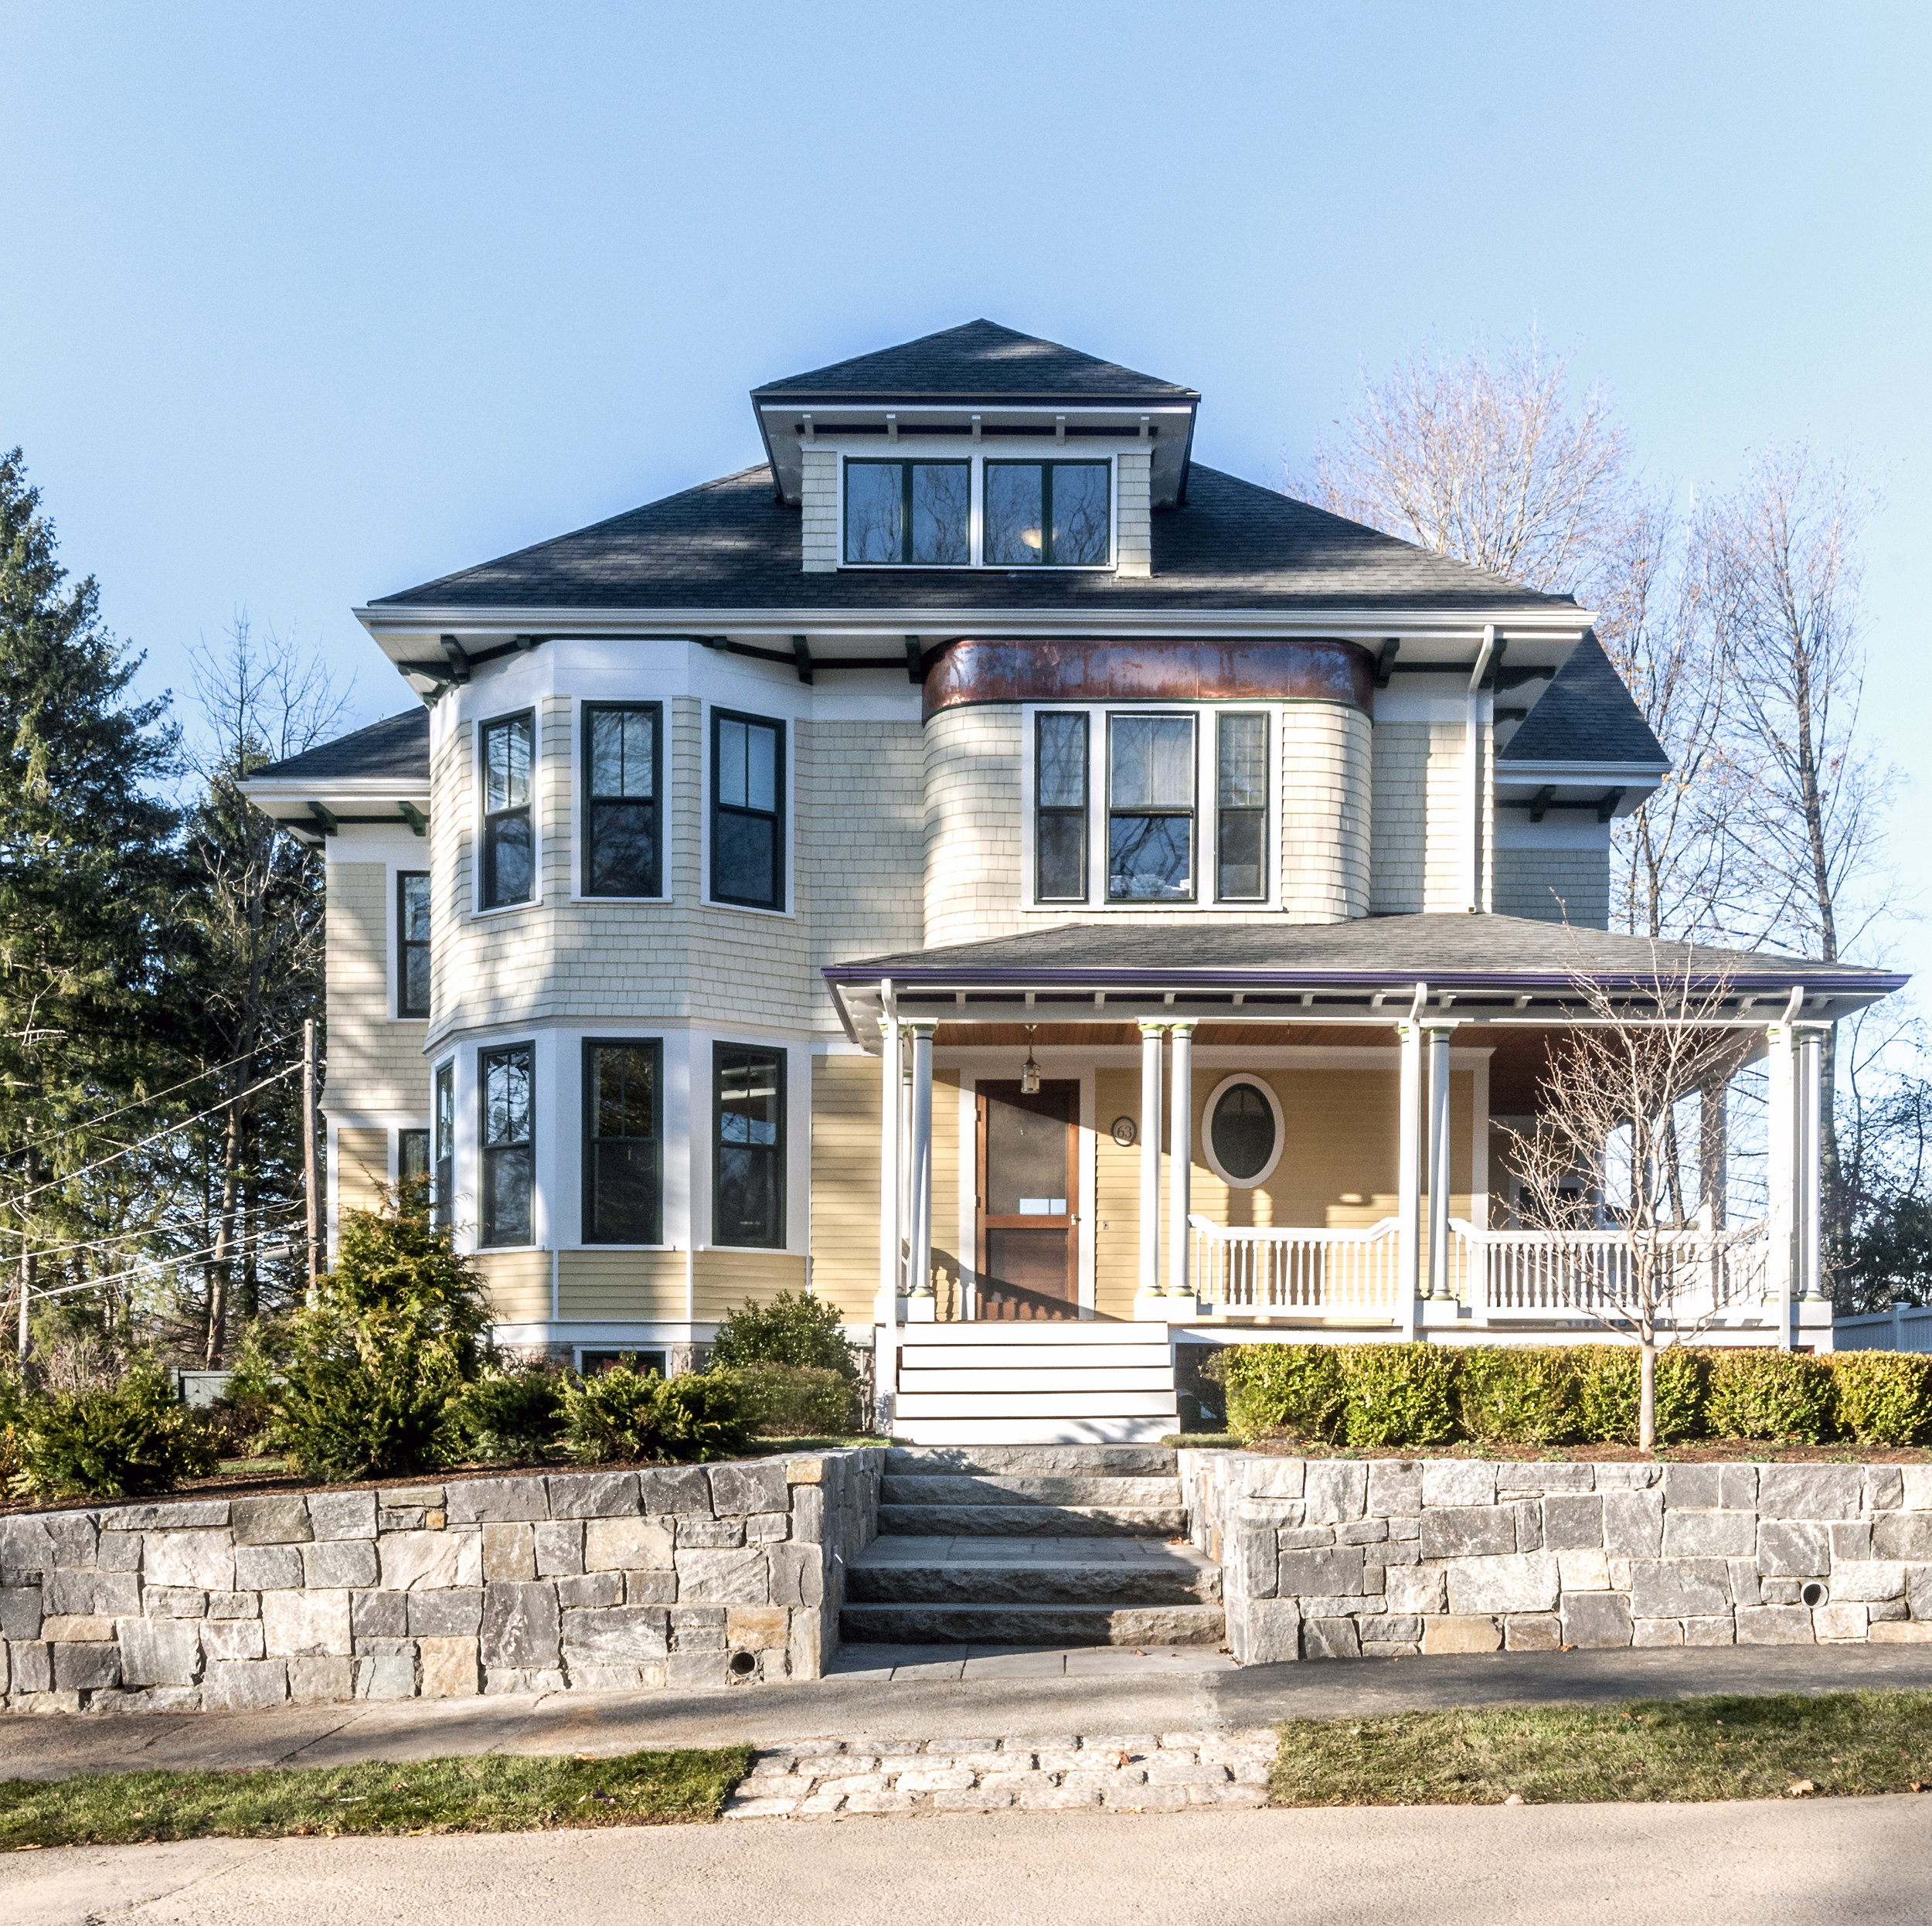 Newton Victorian exterior and landscaping